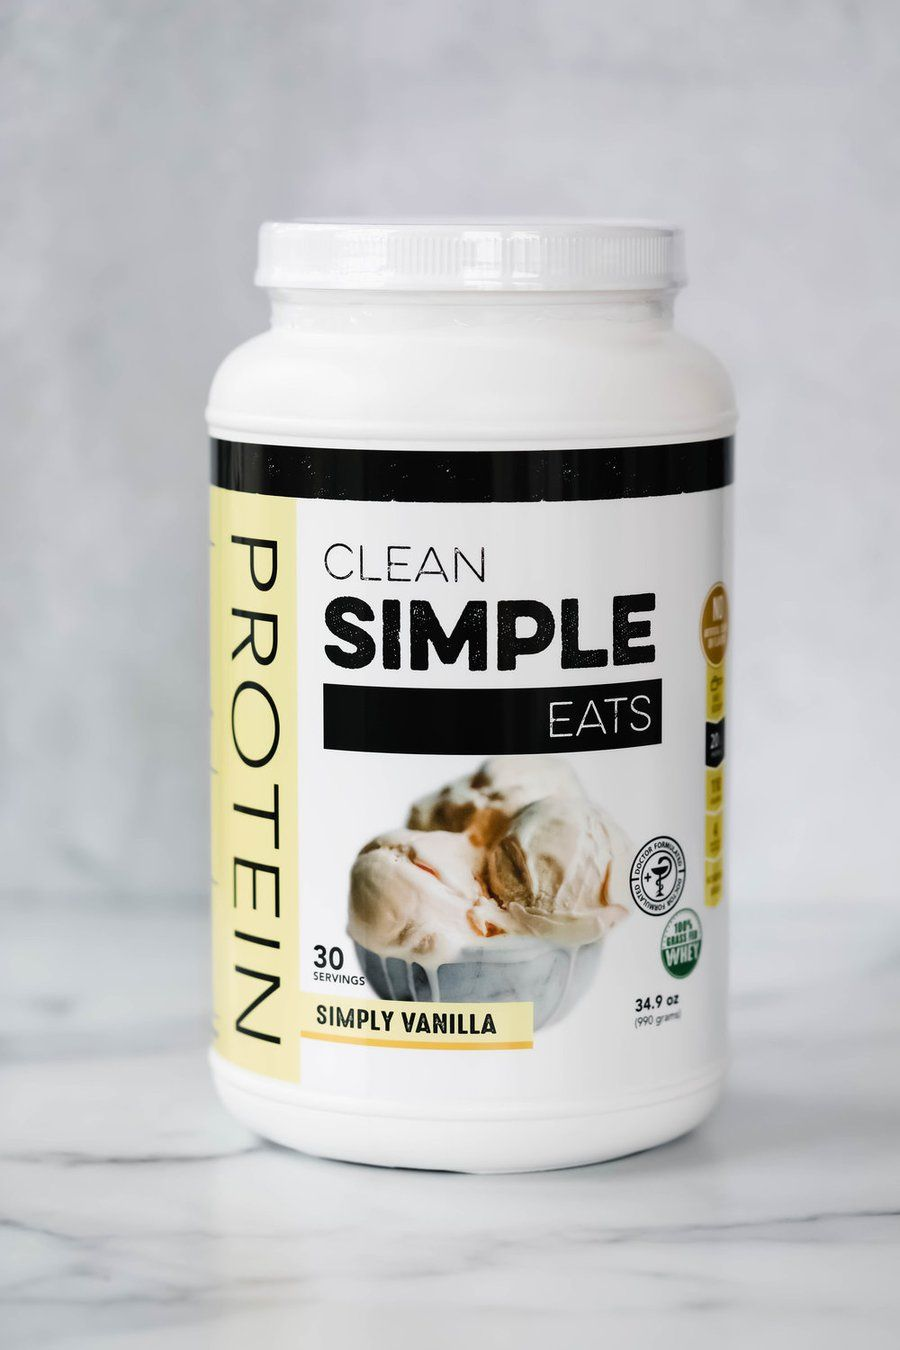 Protein Powder Simply Vanilla Clean Simple Eats Milk Protein Isolate Protein